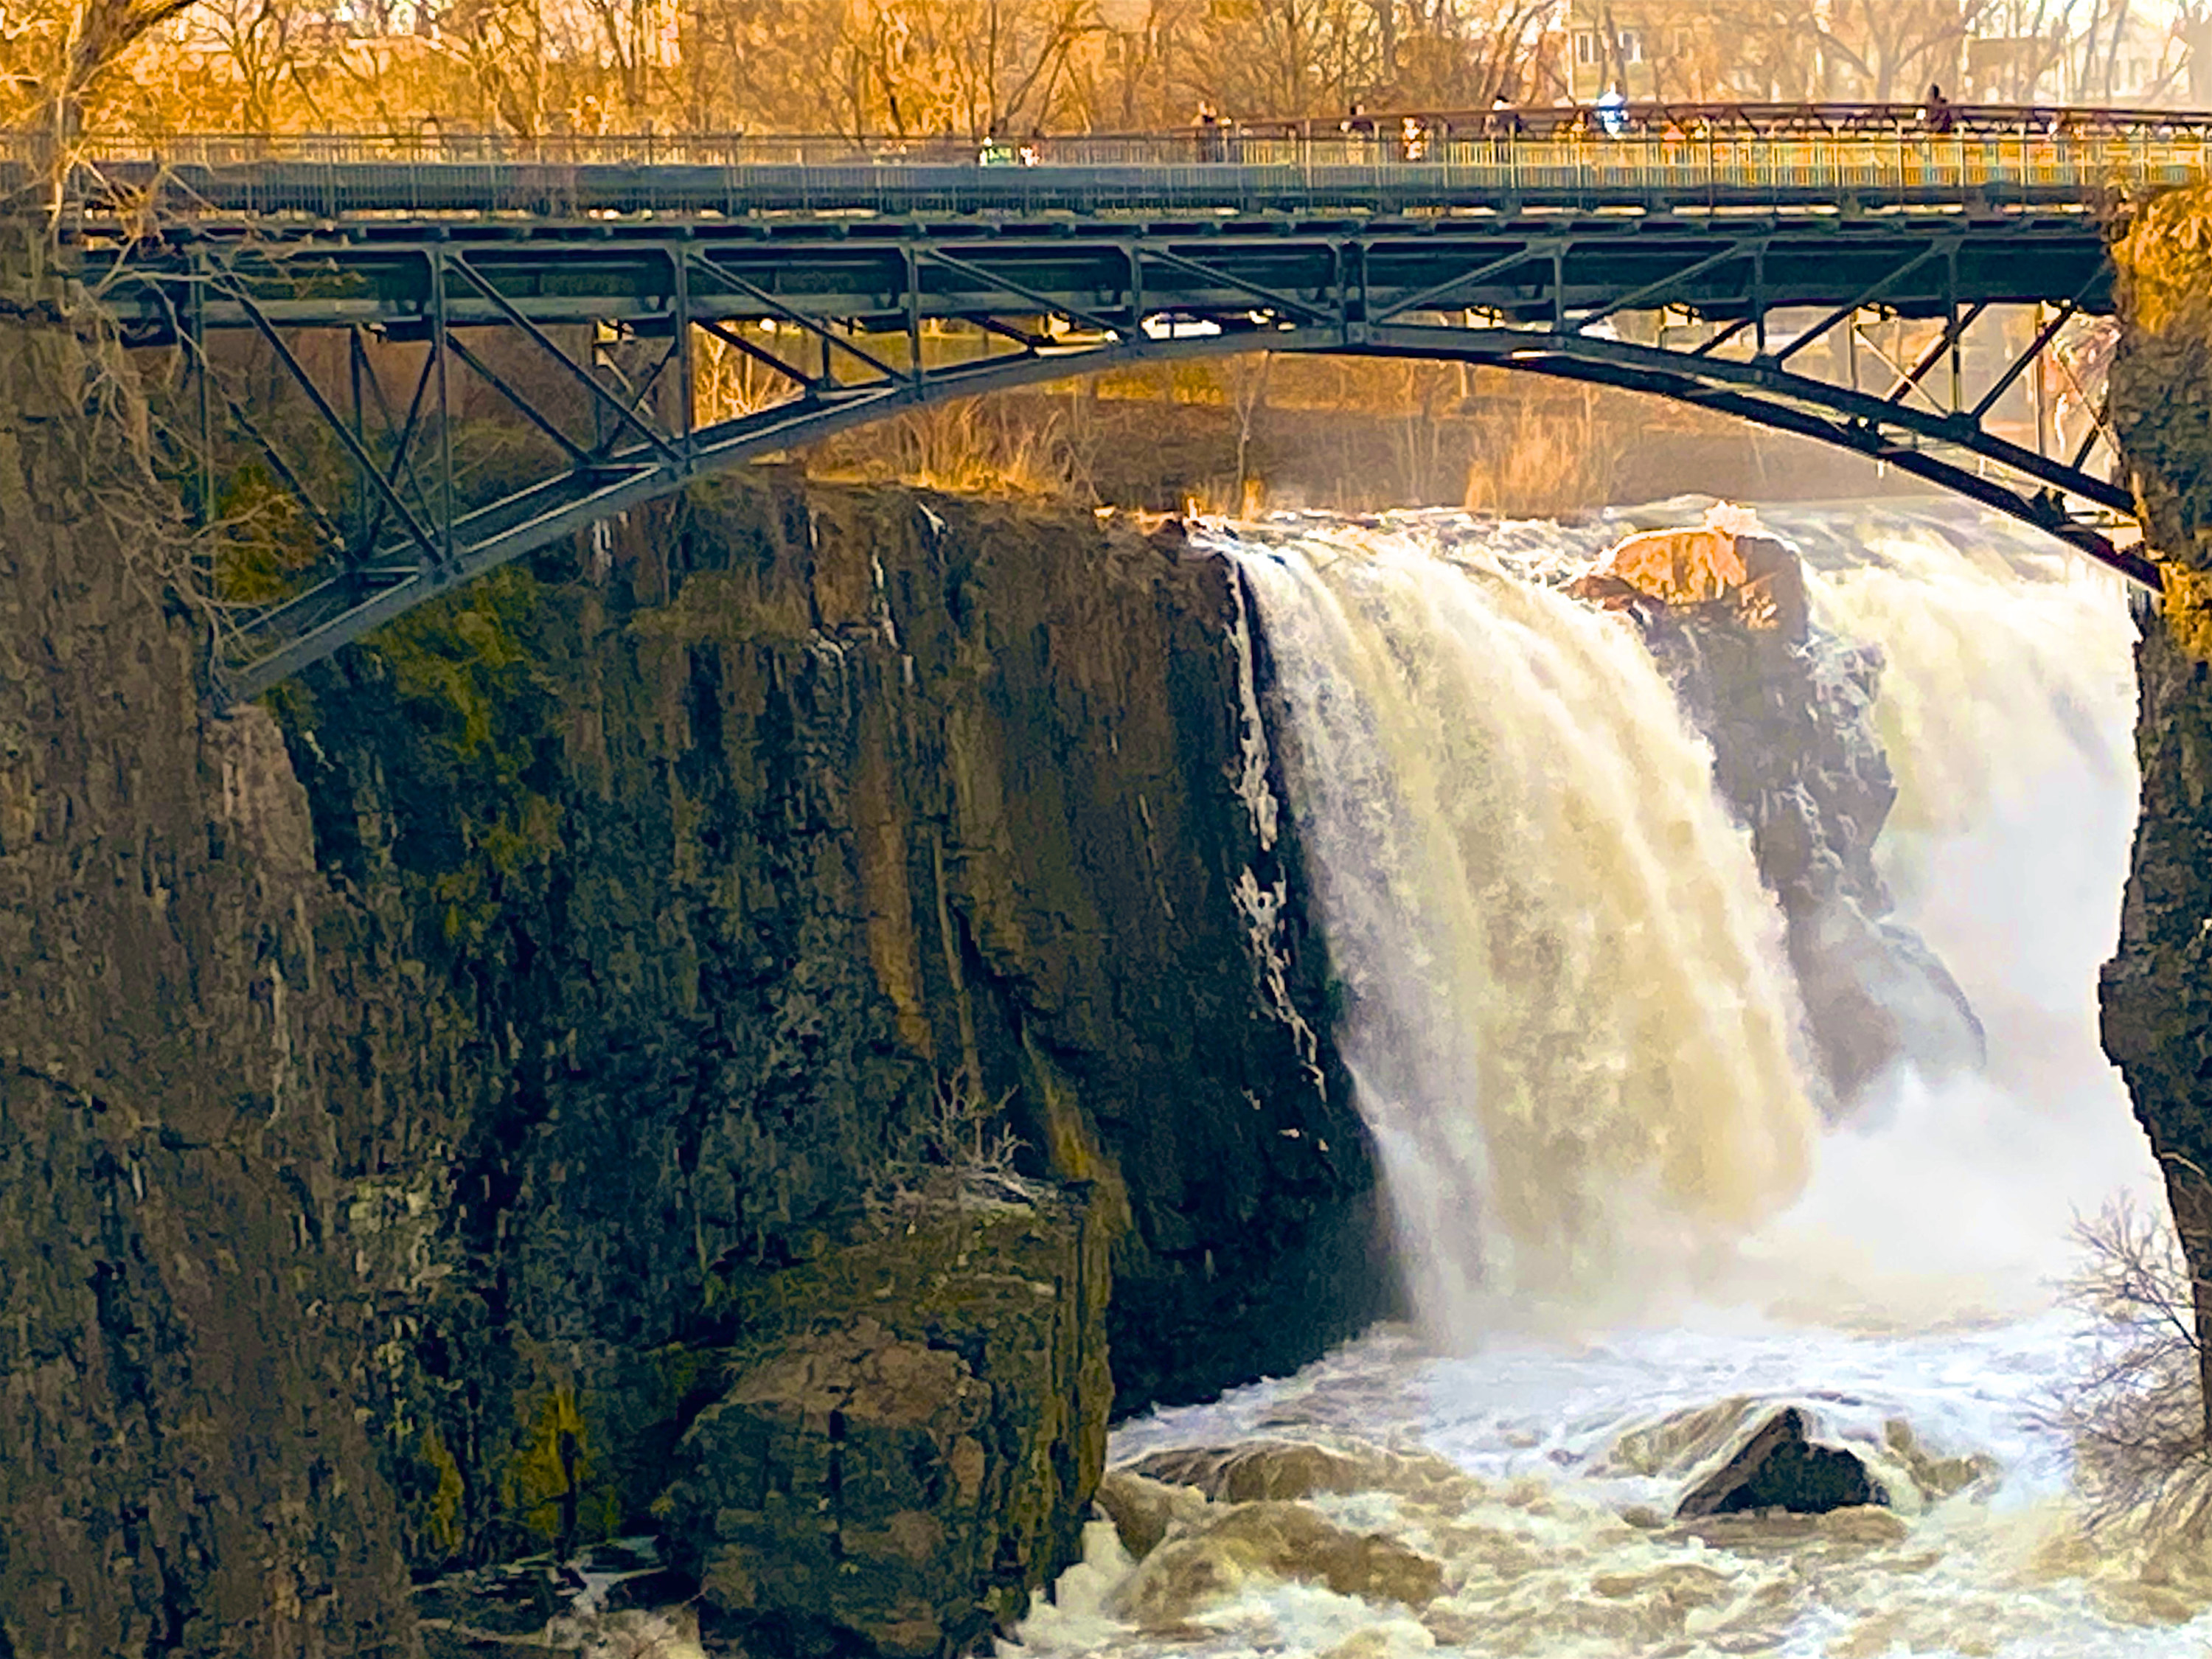 A waterfall thunders down into a river below, while a charming bridge lets visitors view from above.